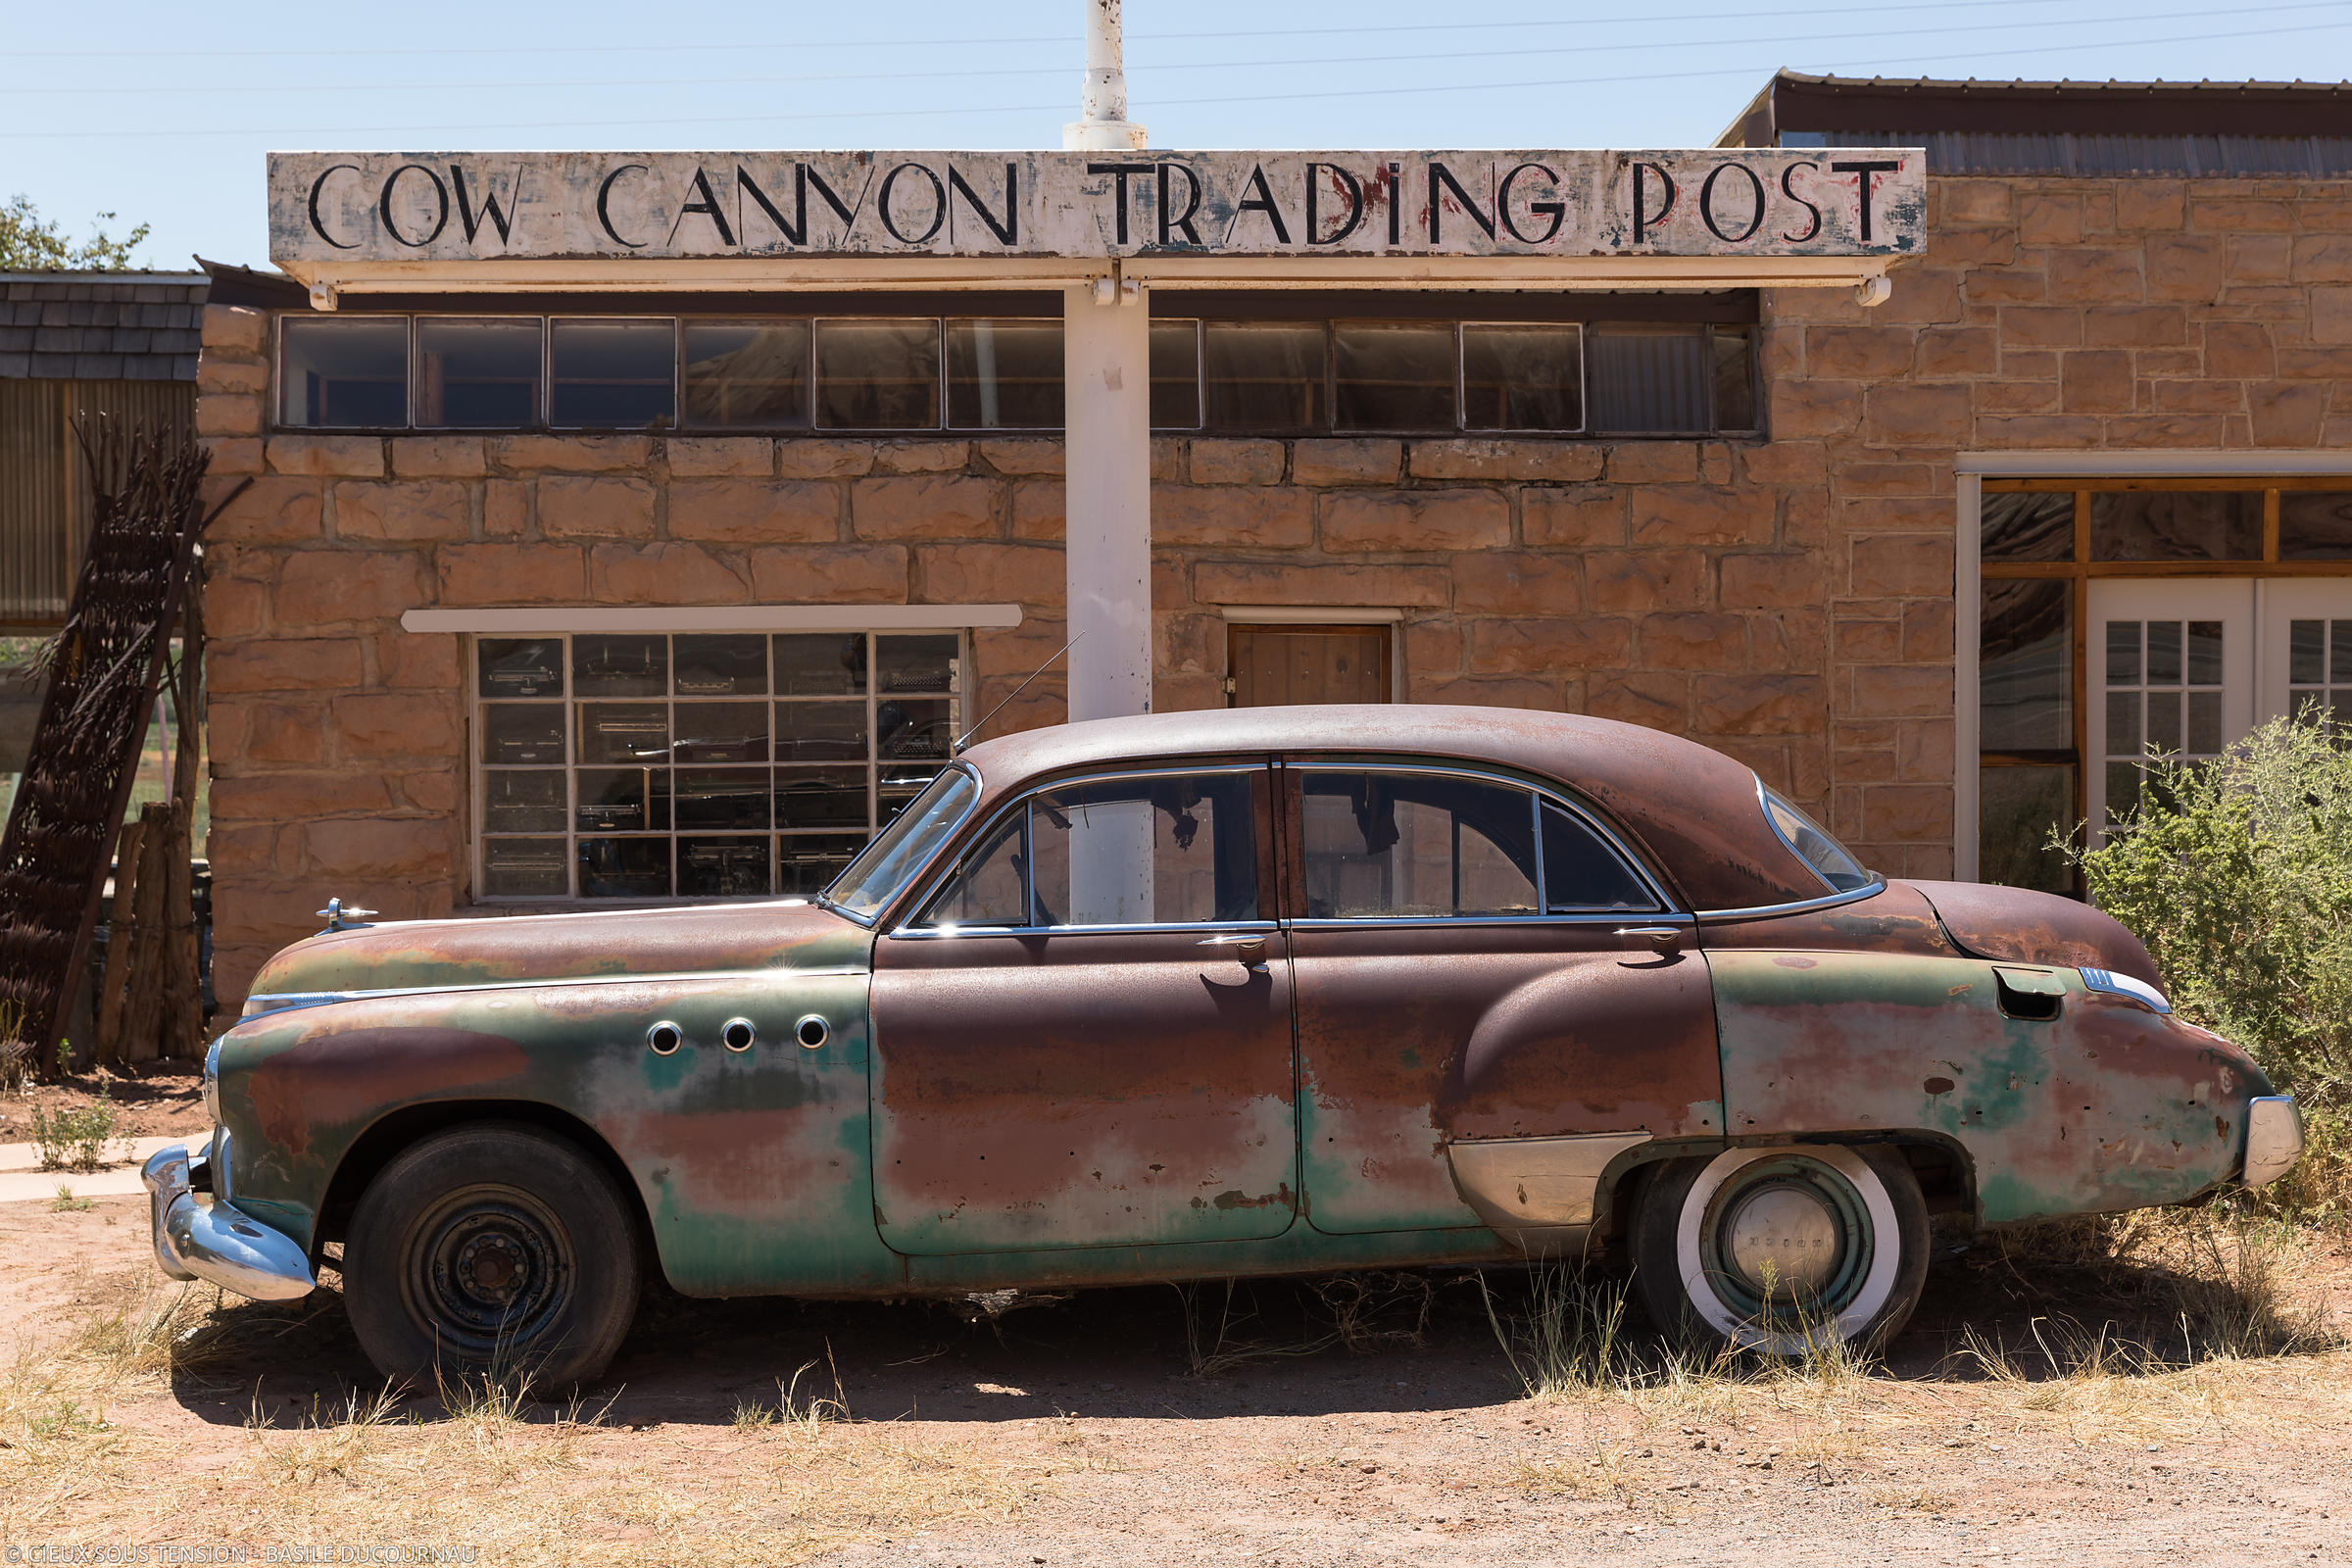 Cow Canyon Trading Post (Bluff, Utah, États-Unis).